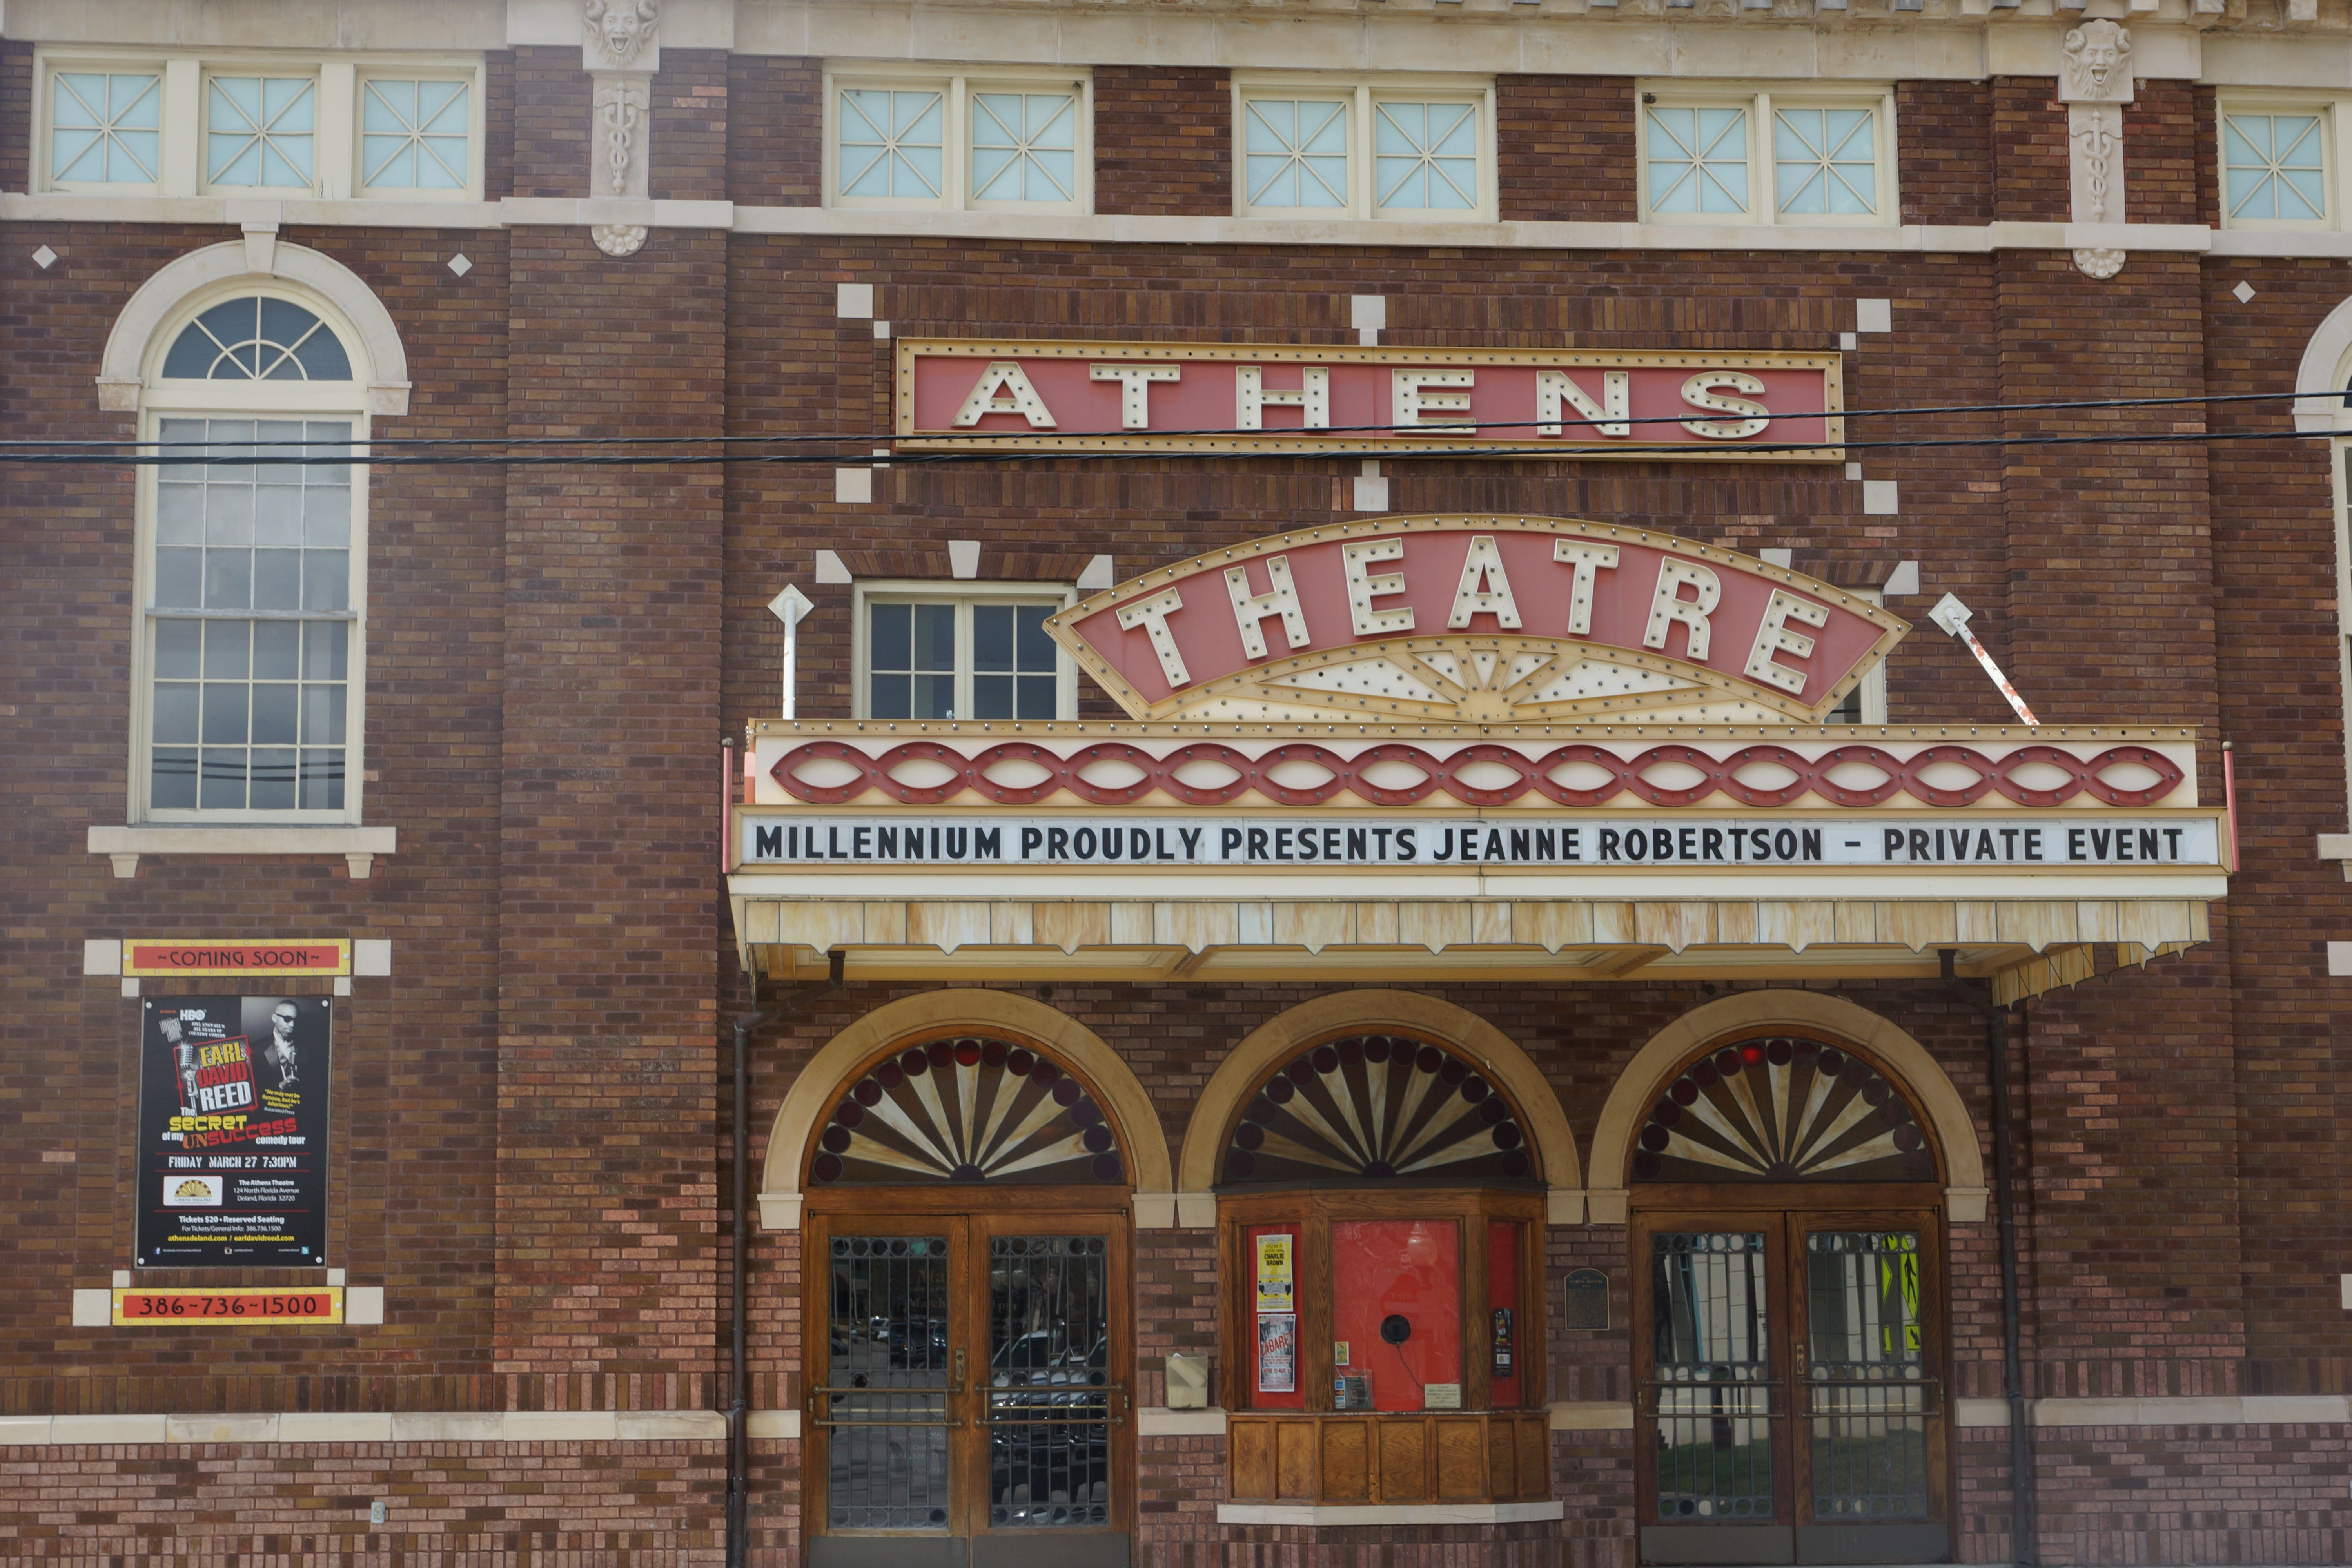 Millennium Takes over the Athen's Theater at the 2014 Millennium Rally